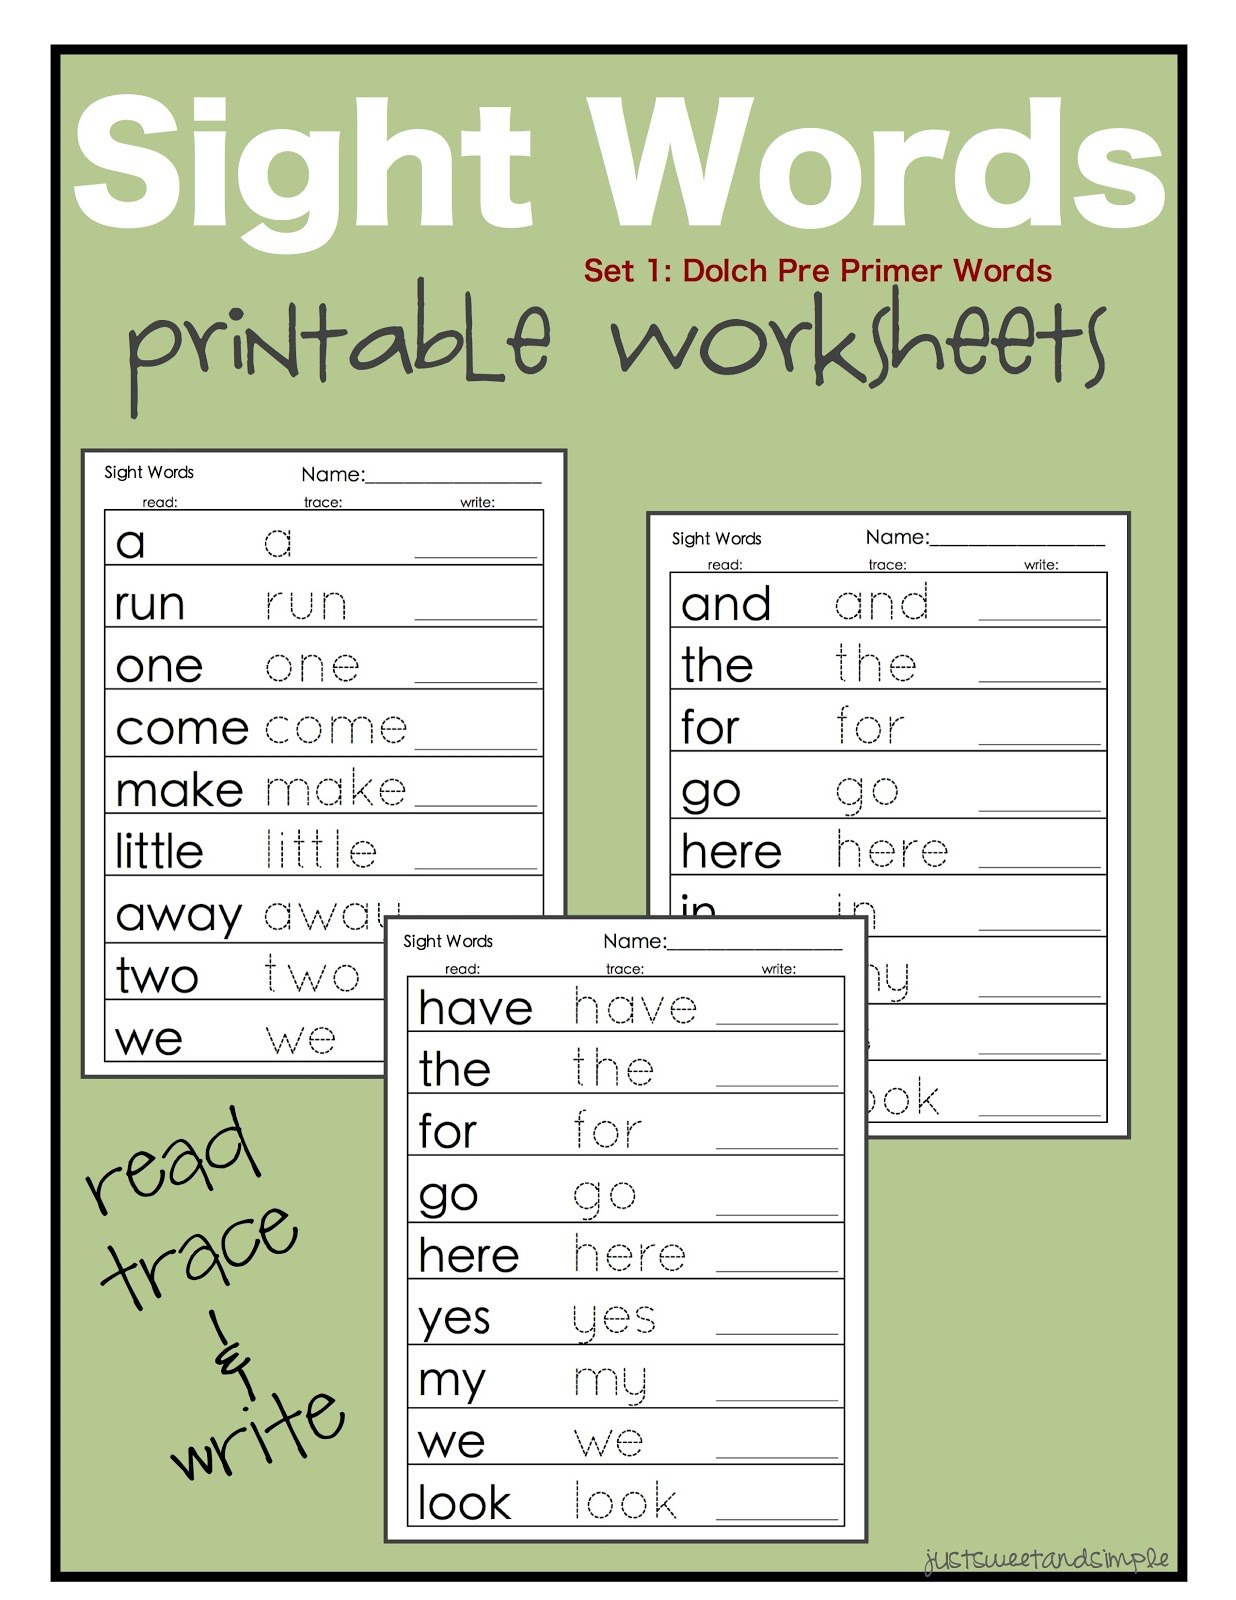 Words for Dolch printable the sight that word my other Sight worksheets for kindergarten  worksheets of all free include